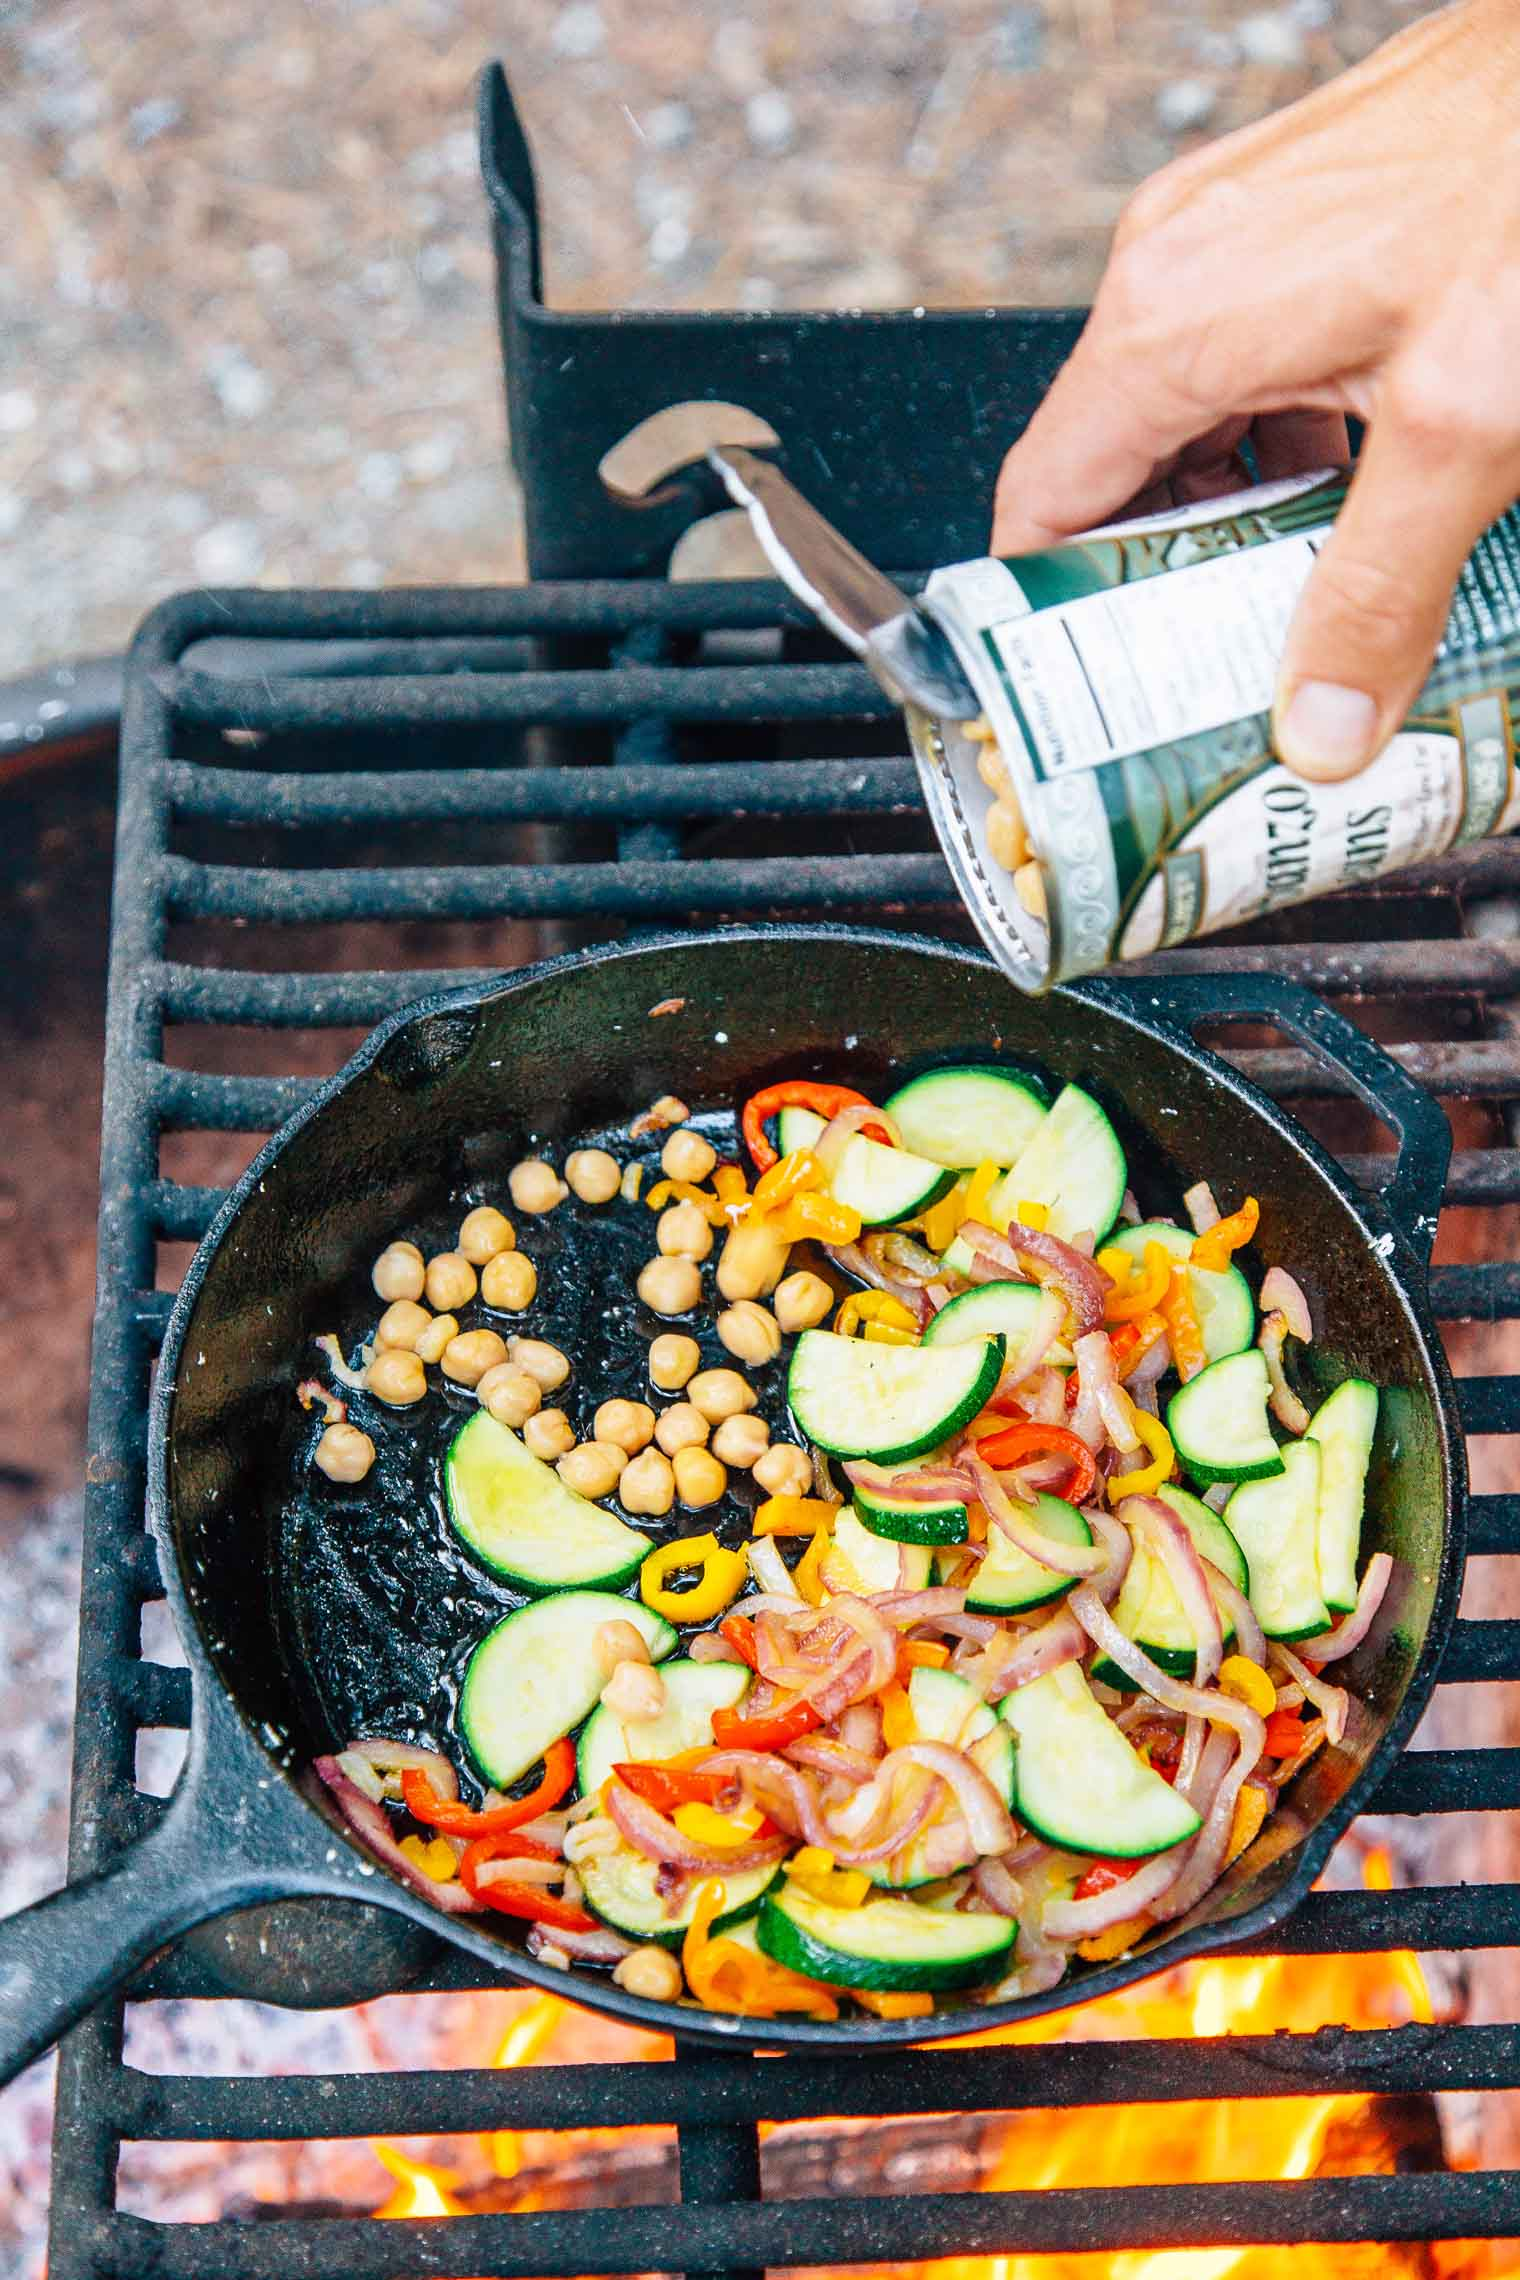 Michael adding chickpeas to a cast-iron skillet full of vegetables